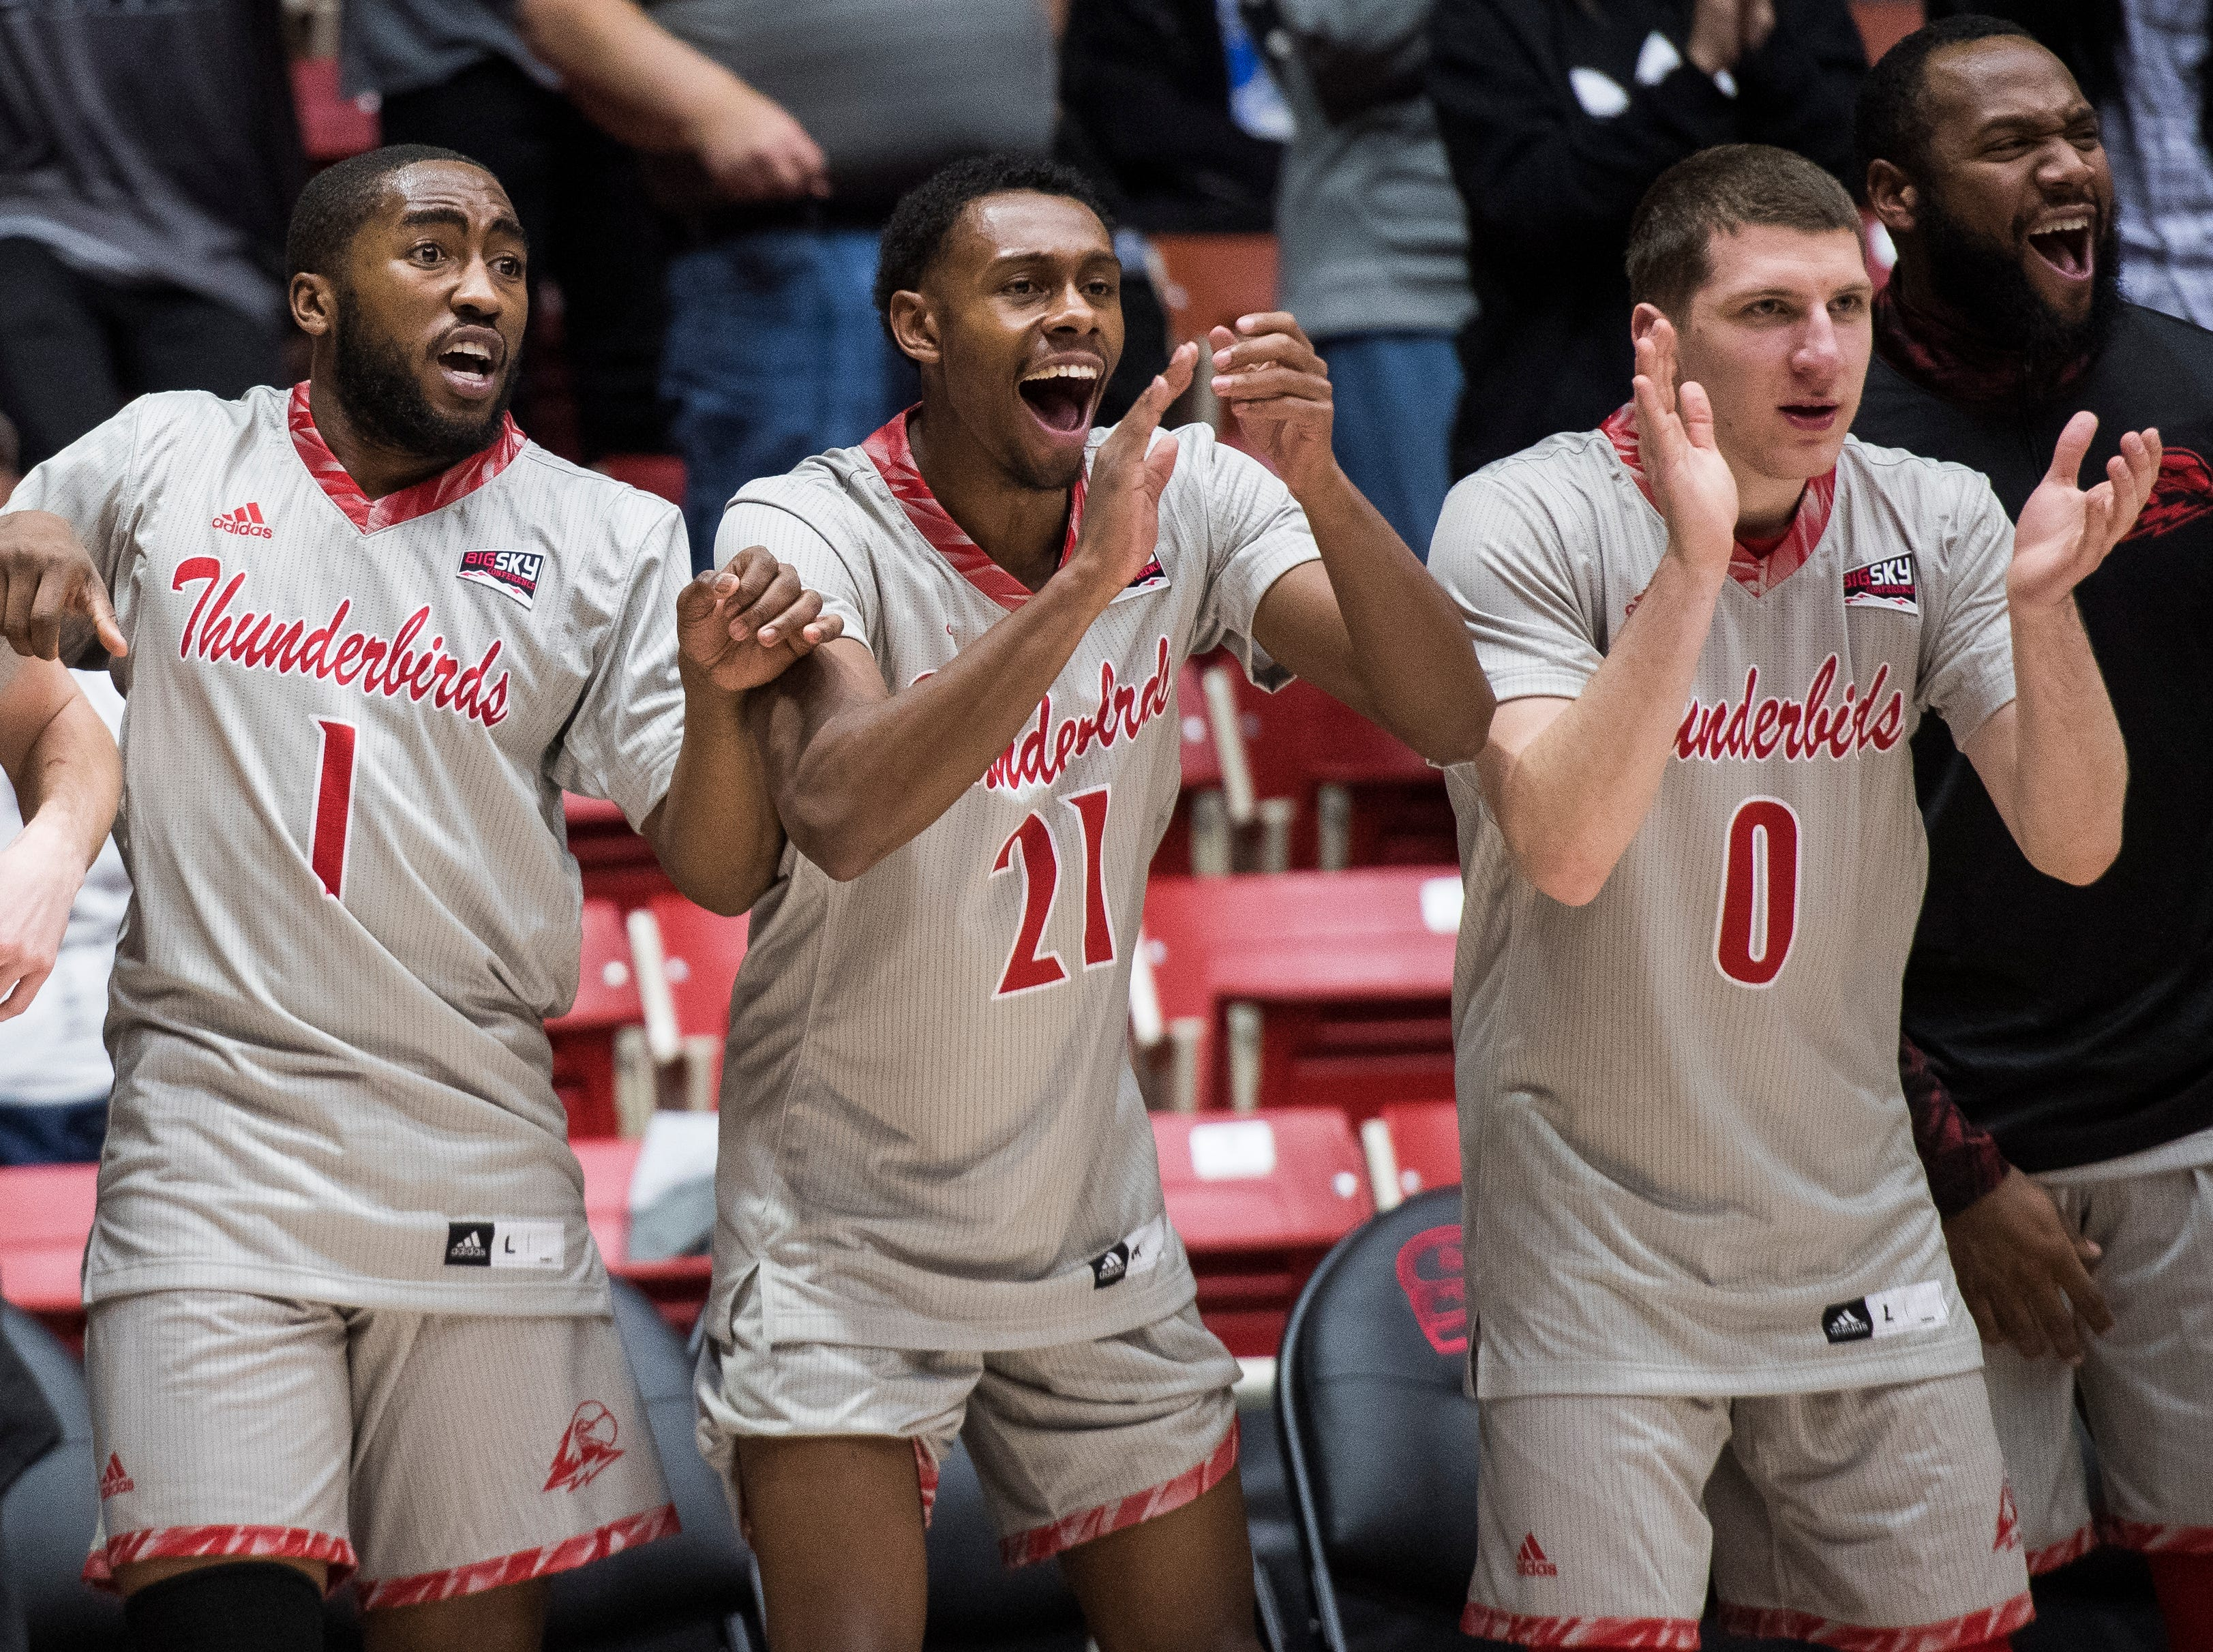 The Southern Utah University bench reacts to retaking the lead in overtime during the game against Pepperdine University in the America First Event Center Saturday, December 15, 2018. SUU won in overtime, 78-69.